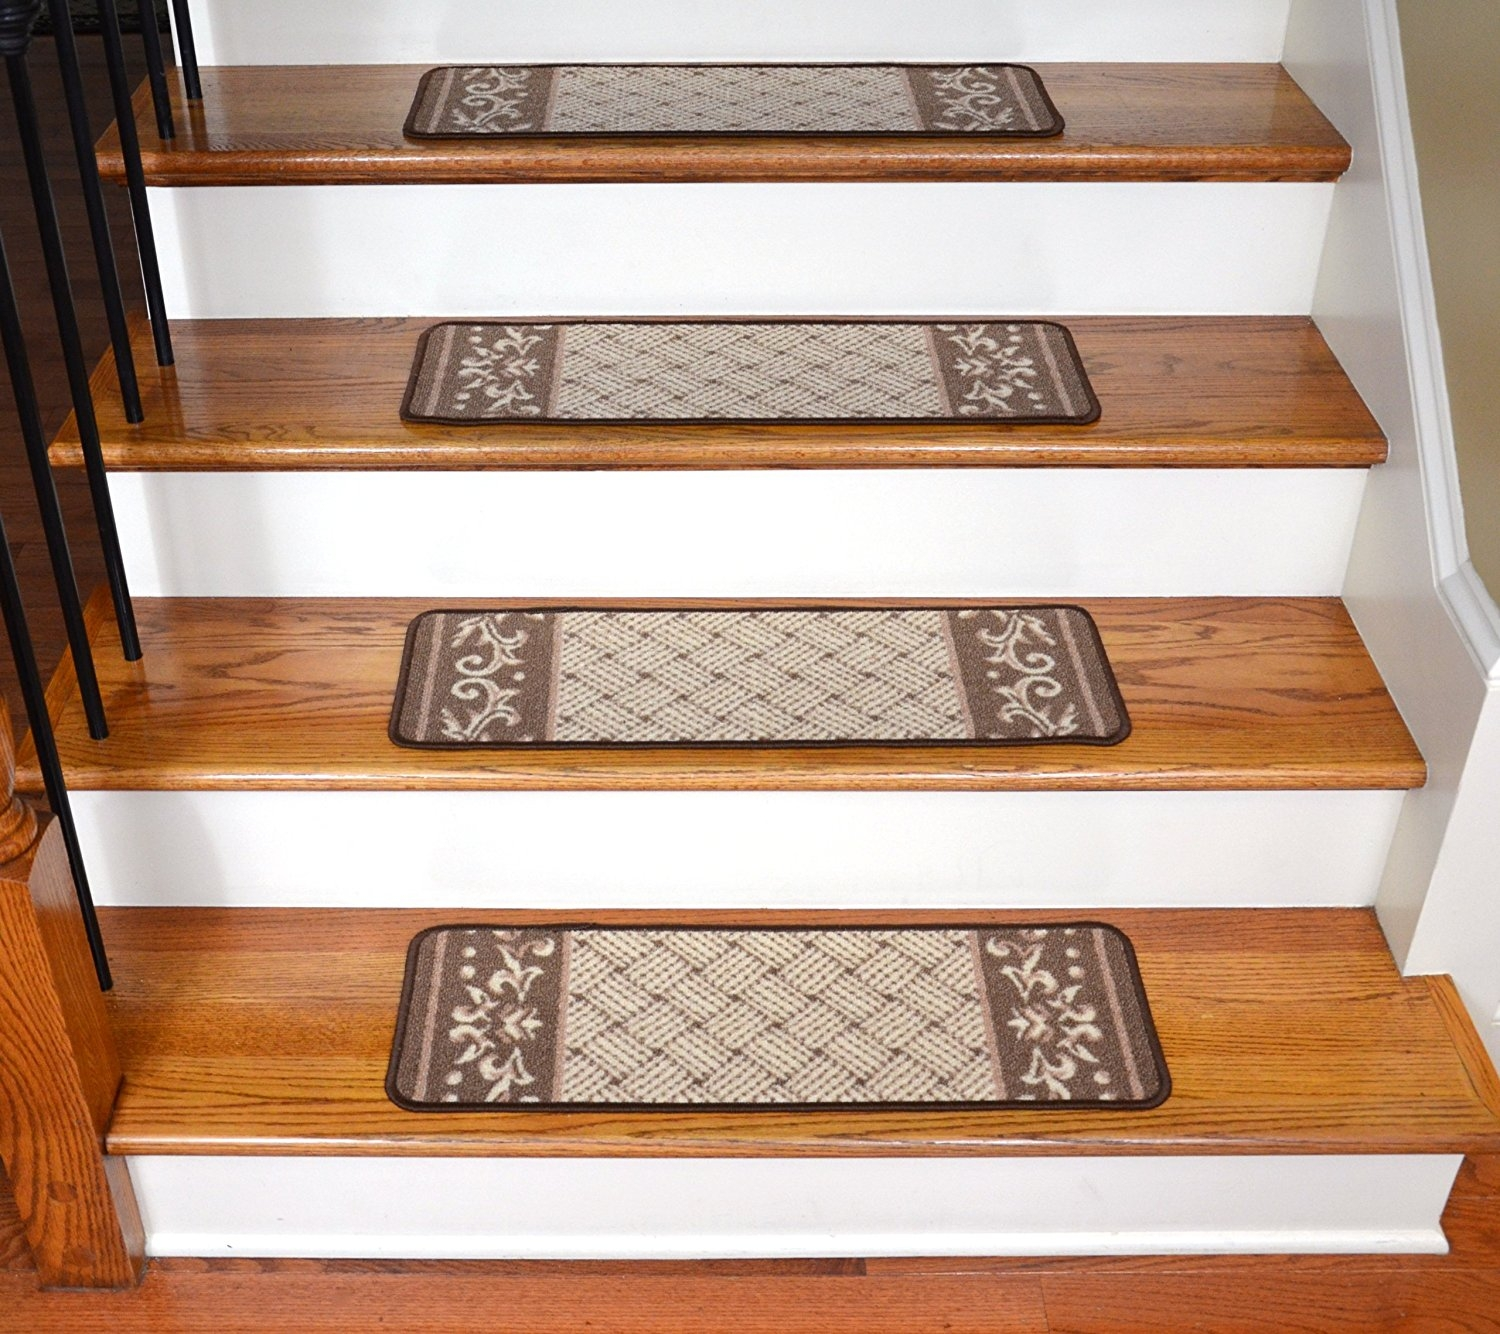 Amazon Carpet Stair Treads Caramel Scroll Border Regarding Non Slip Stair Treads Carpets (View 12 of 15)